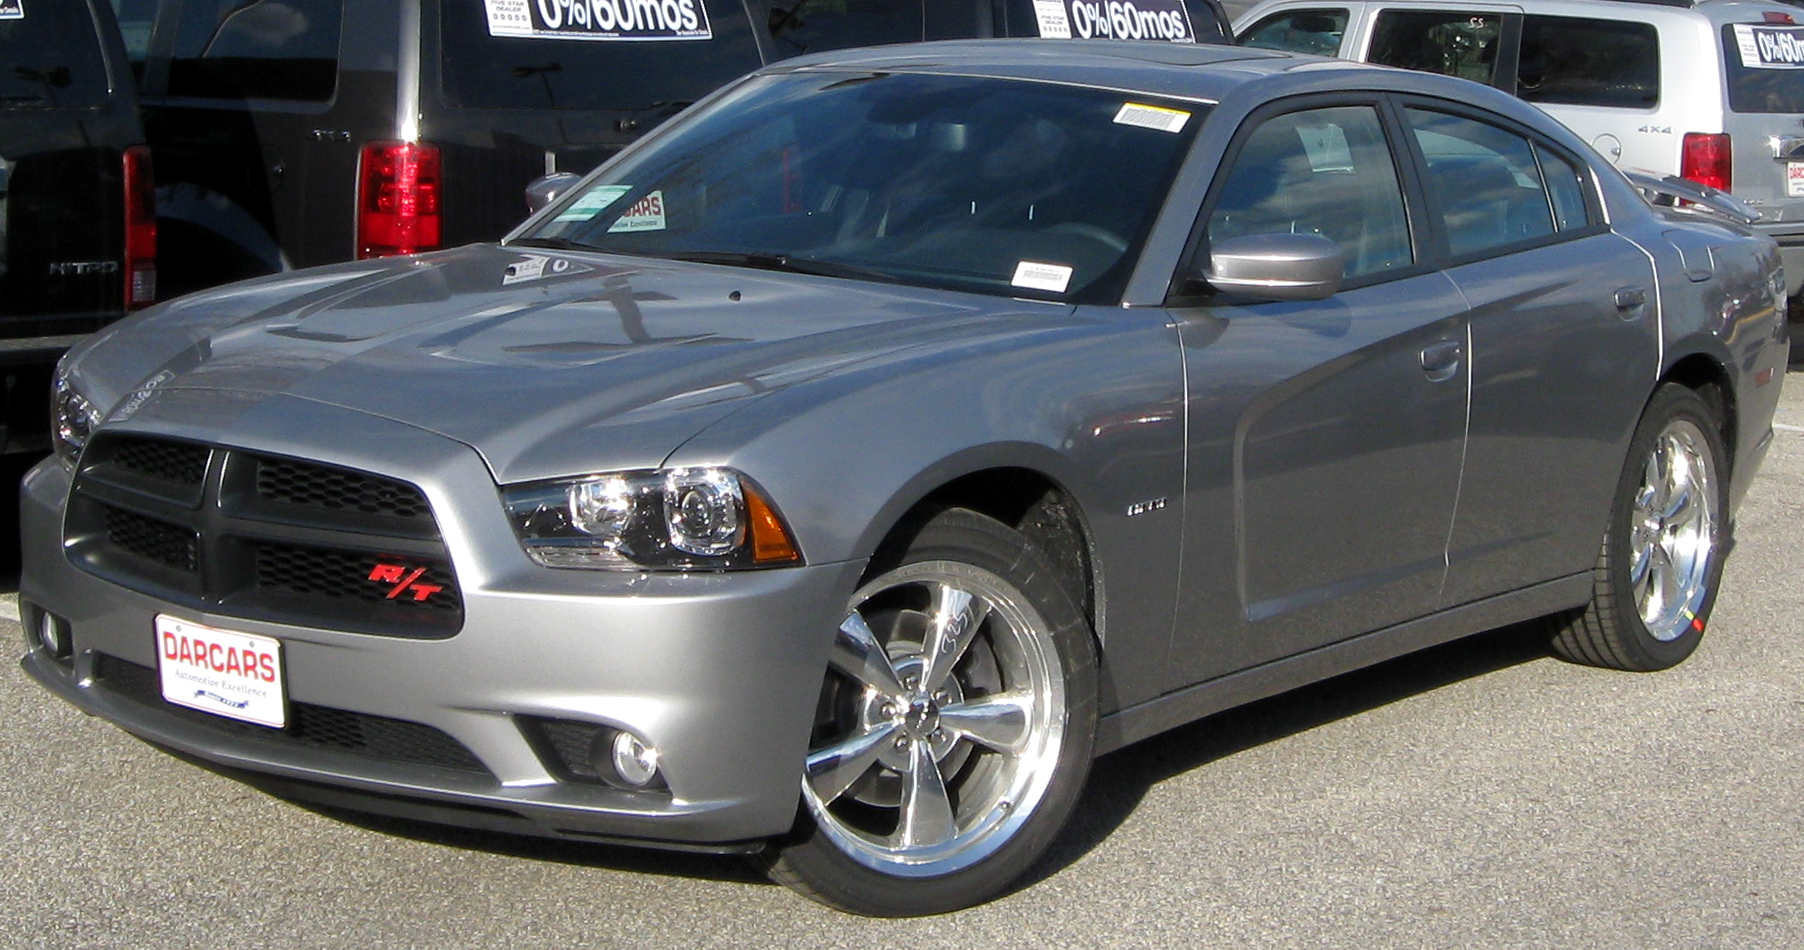 http://upload.wikimedia.org/wikipedia/commons/d/d7/2011_Dodge_Charger_--_02-14-2011.jpg